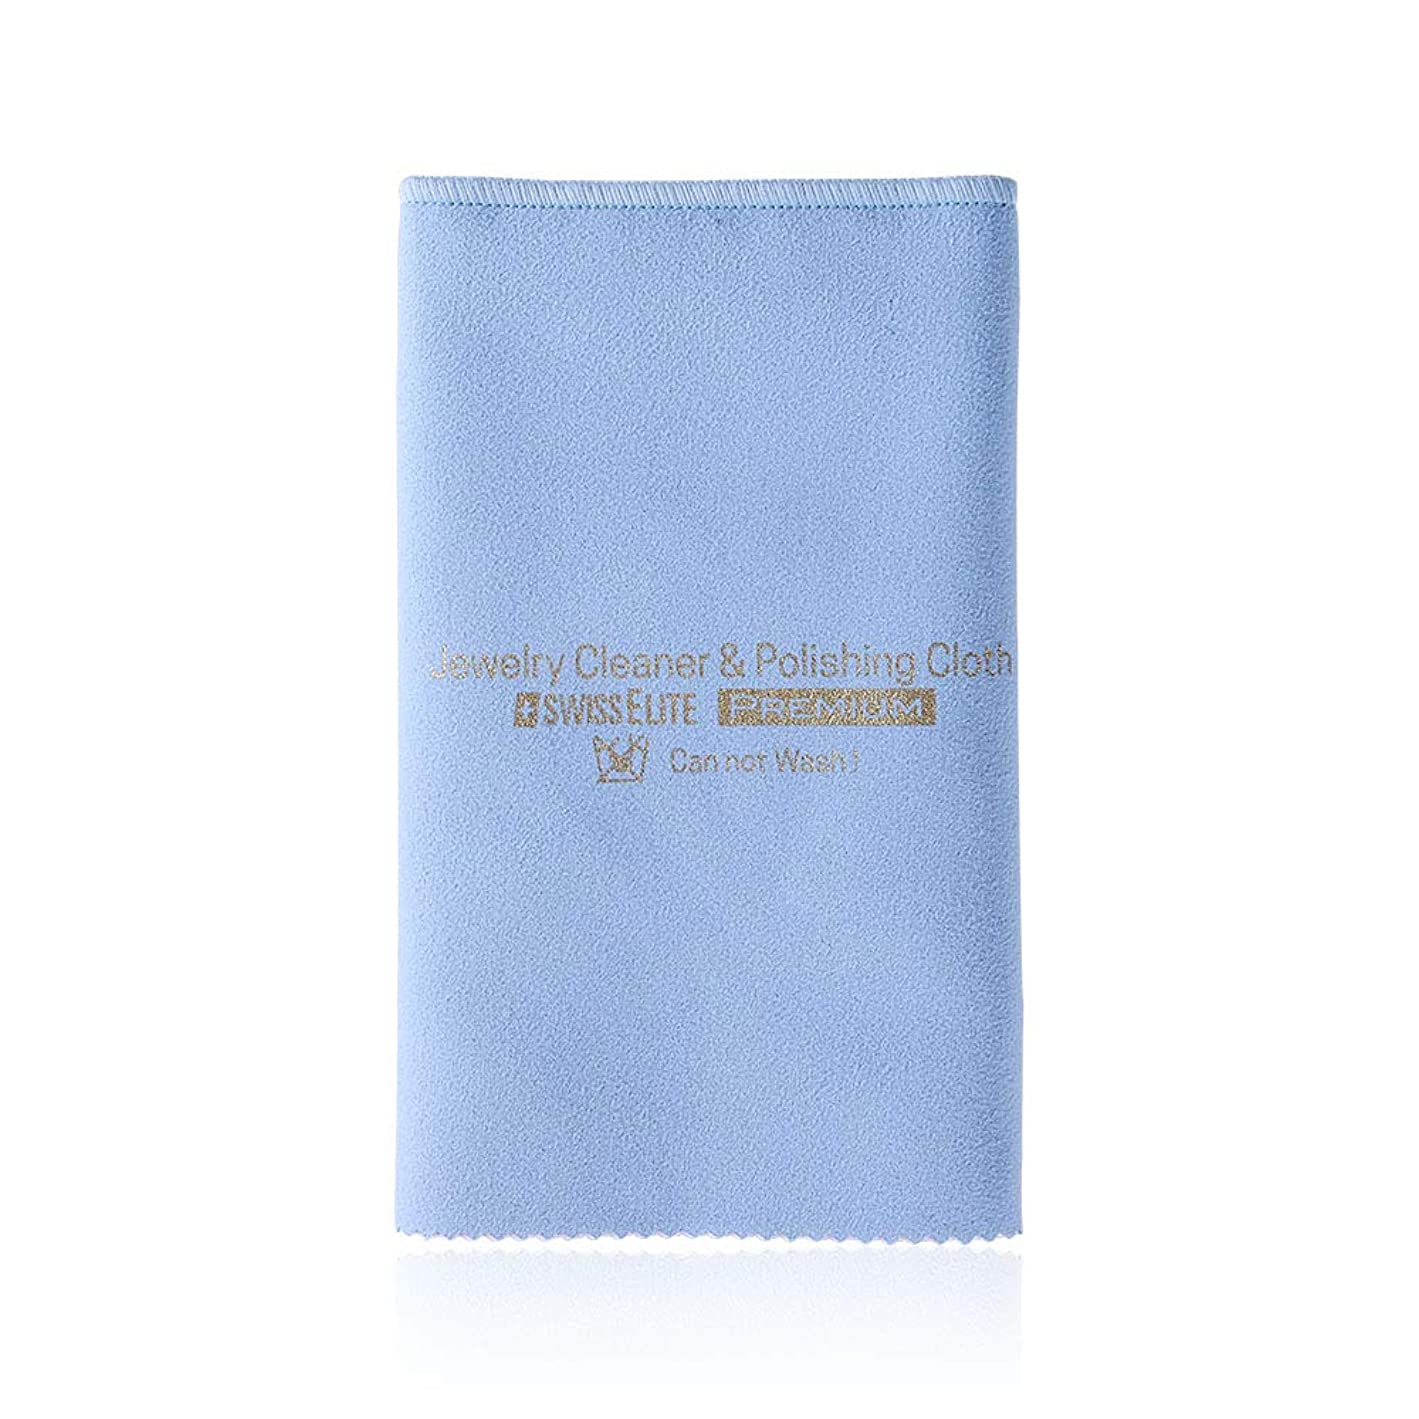 Polishing Cloth for Gold,Silver,Platinum,Jewelry Polishing Cloth,Keep Jewelry Clean and Shiny (One Pack) e70526611189090